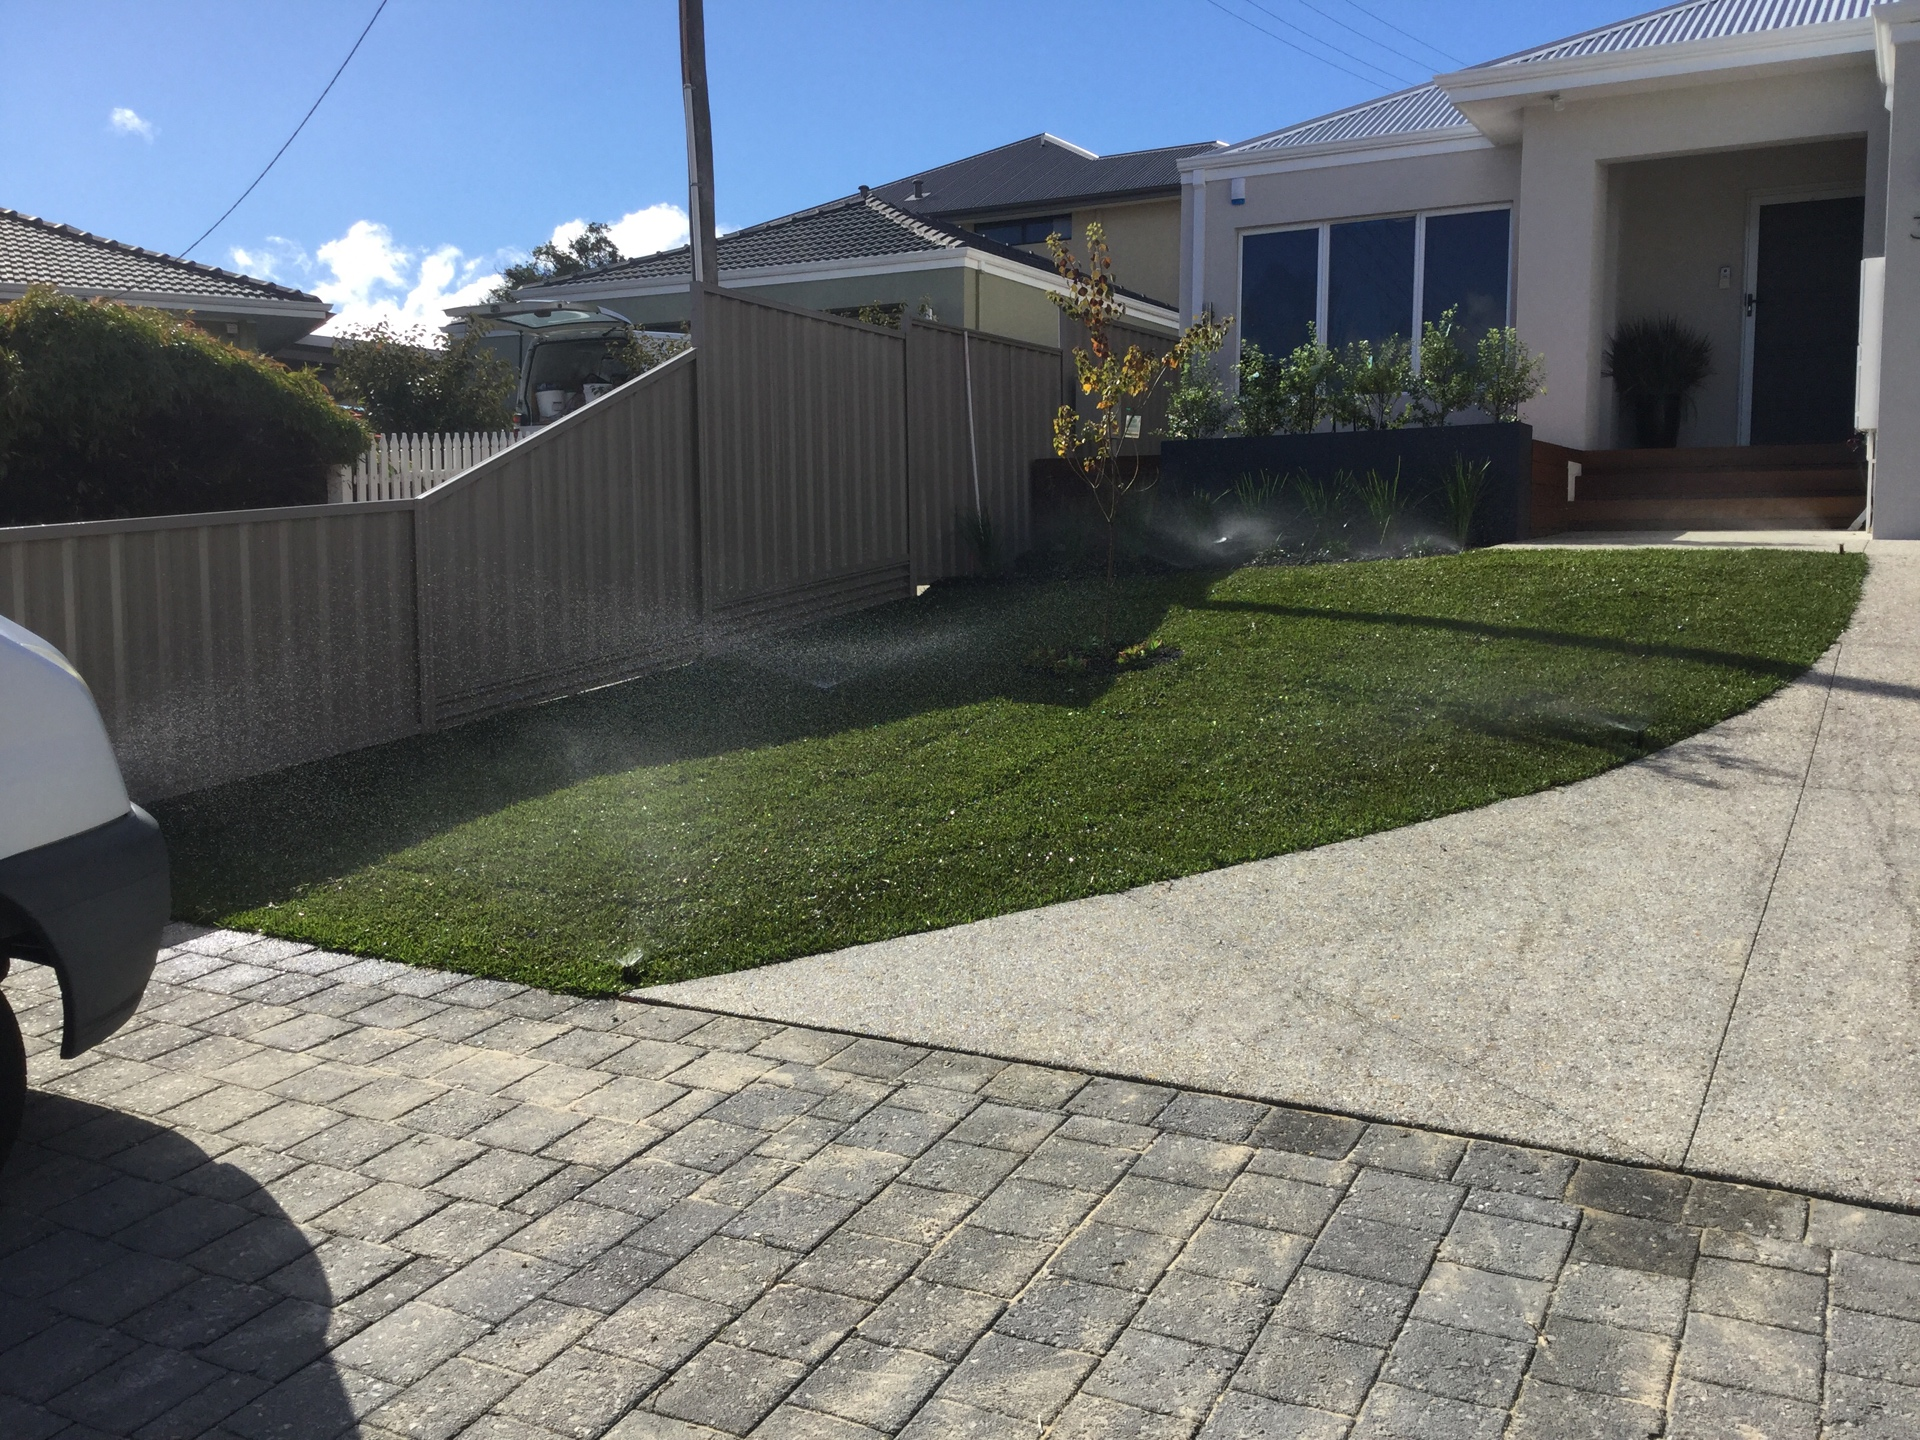 Reticulation that does what it is meant to do promotes happiness! Reticulation Happiness is: Well designed reticulation promotes a healthy lawns and gardens. K& K Reticulation services